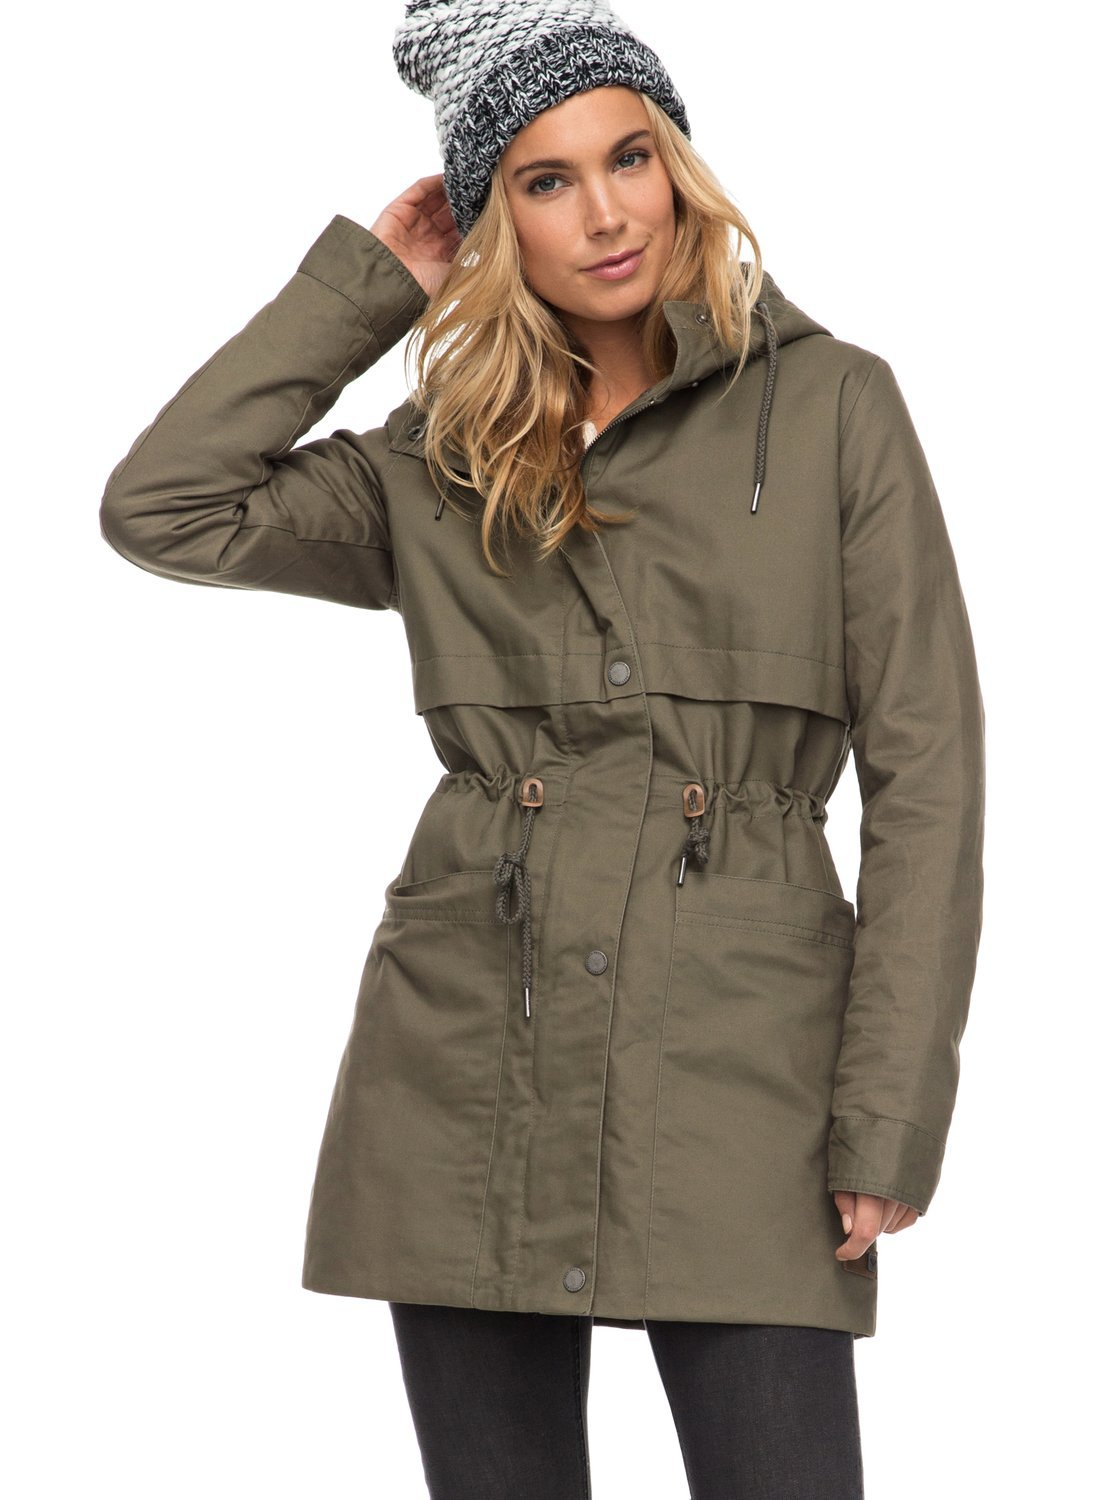 Roxy Womens Sea Dance - Water Repellent Parka - M - Green Dusty Olive M